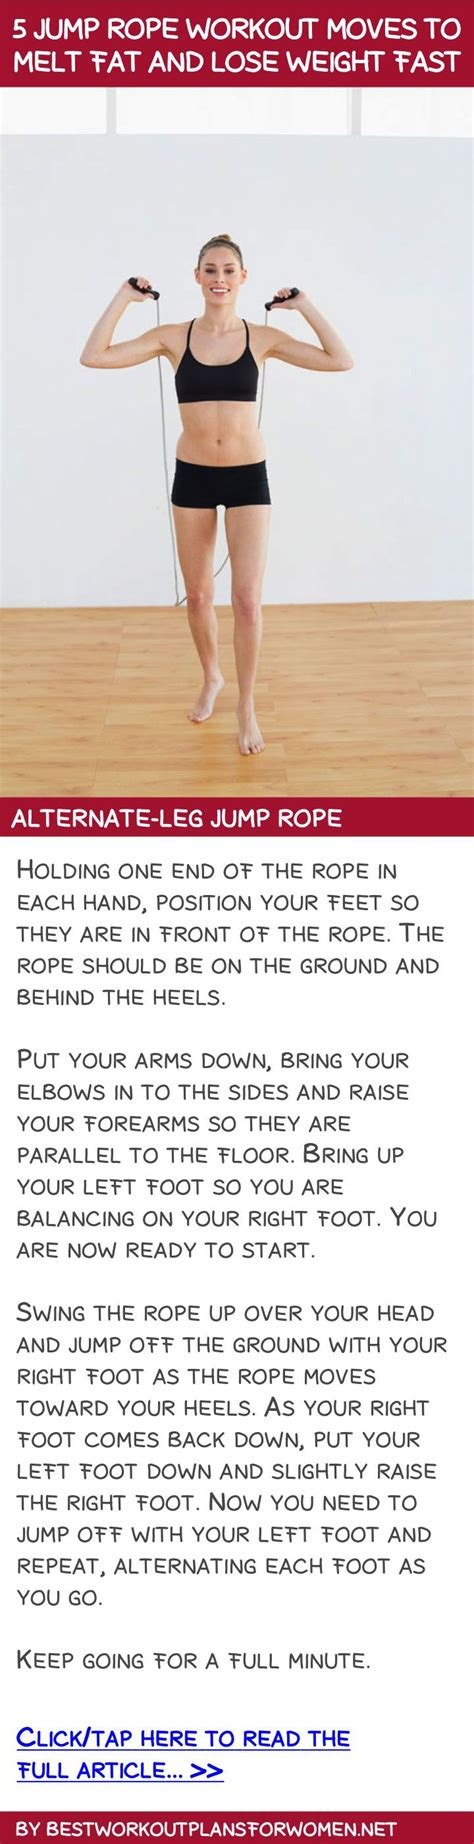 jump in melt fat fast with jump rope circuit training 5 jump rope workout moves to melt fat and lose weight fast